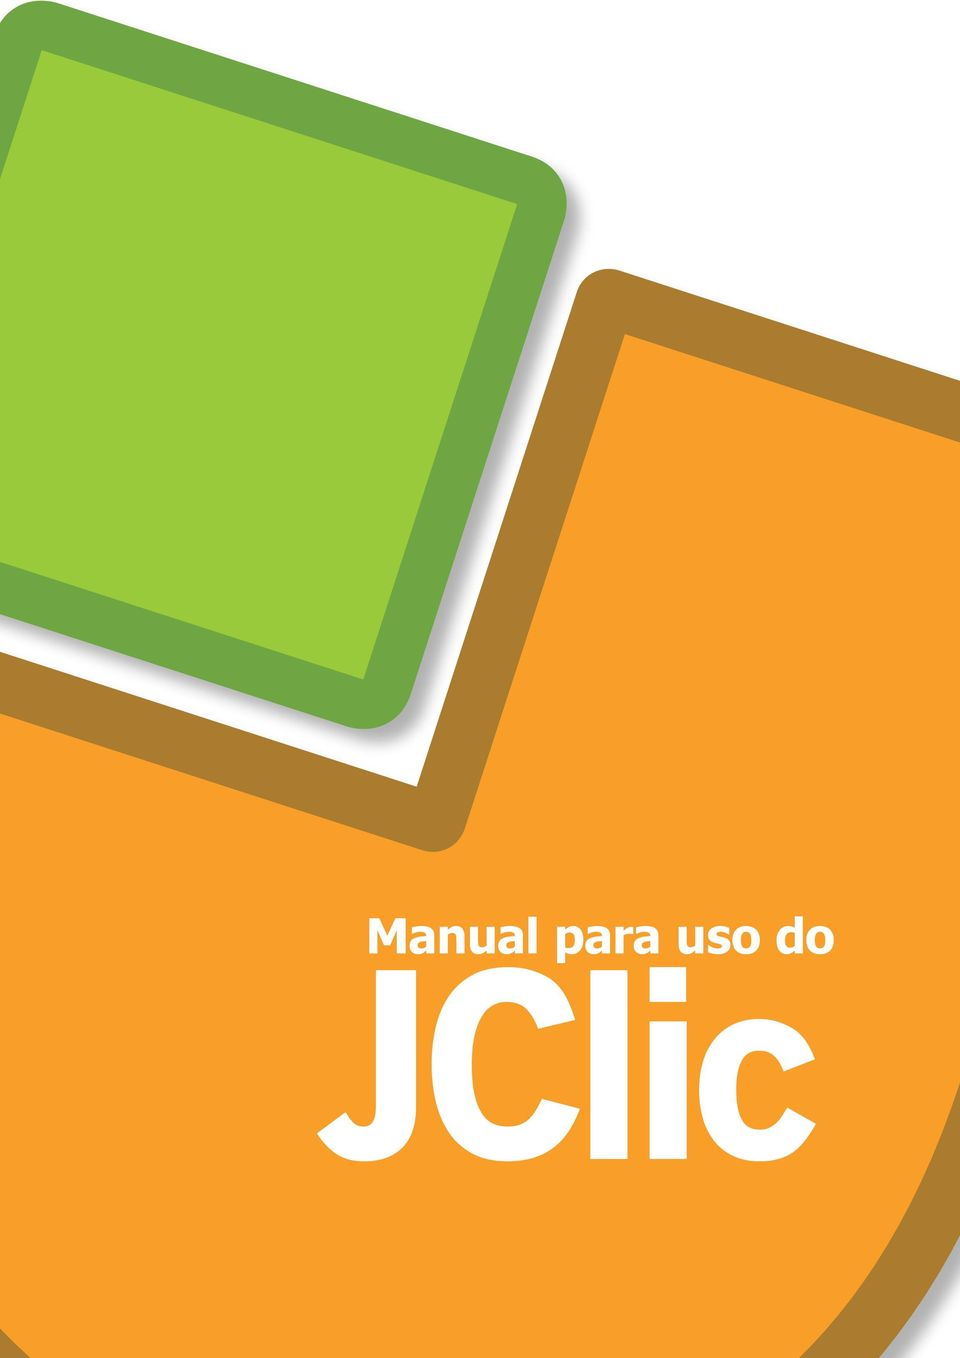 do JClic